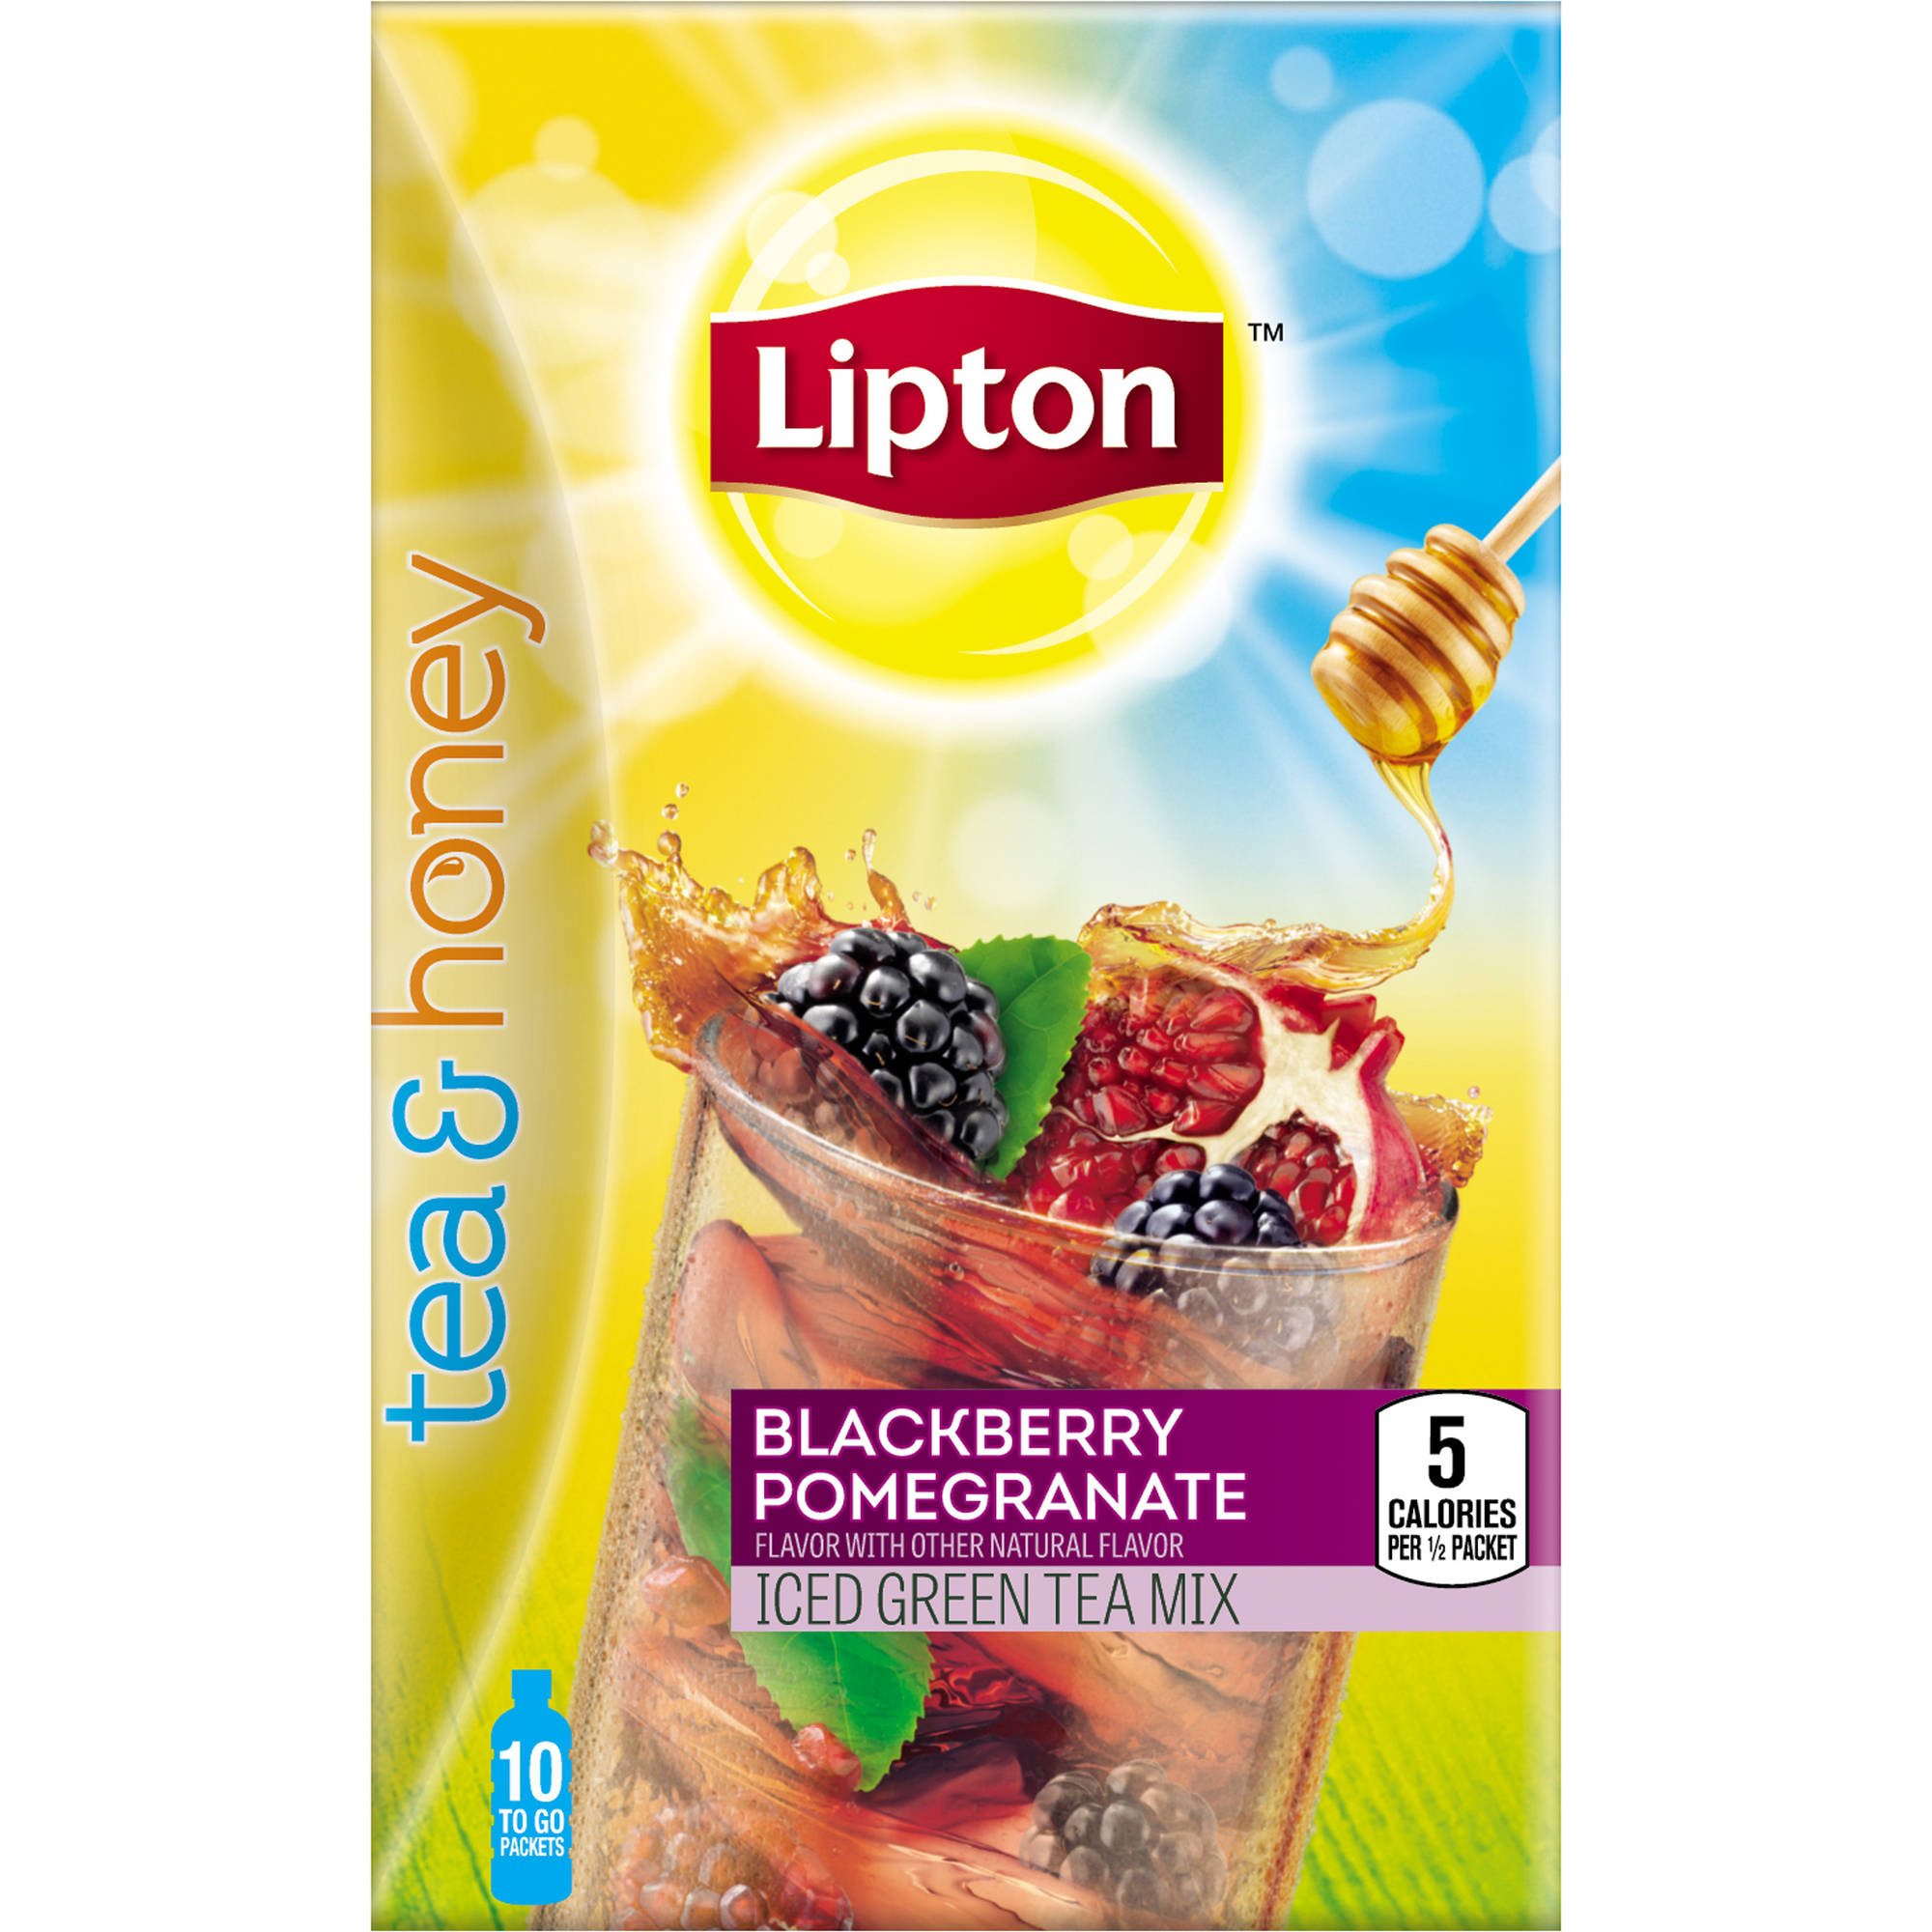 Lipton Tea and Honey Blackberry Pomegranate Iced Green Tea To Go Packets, 10 ct